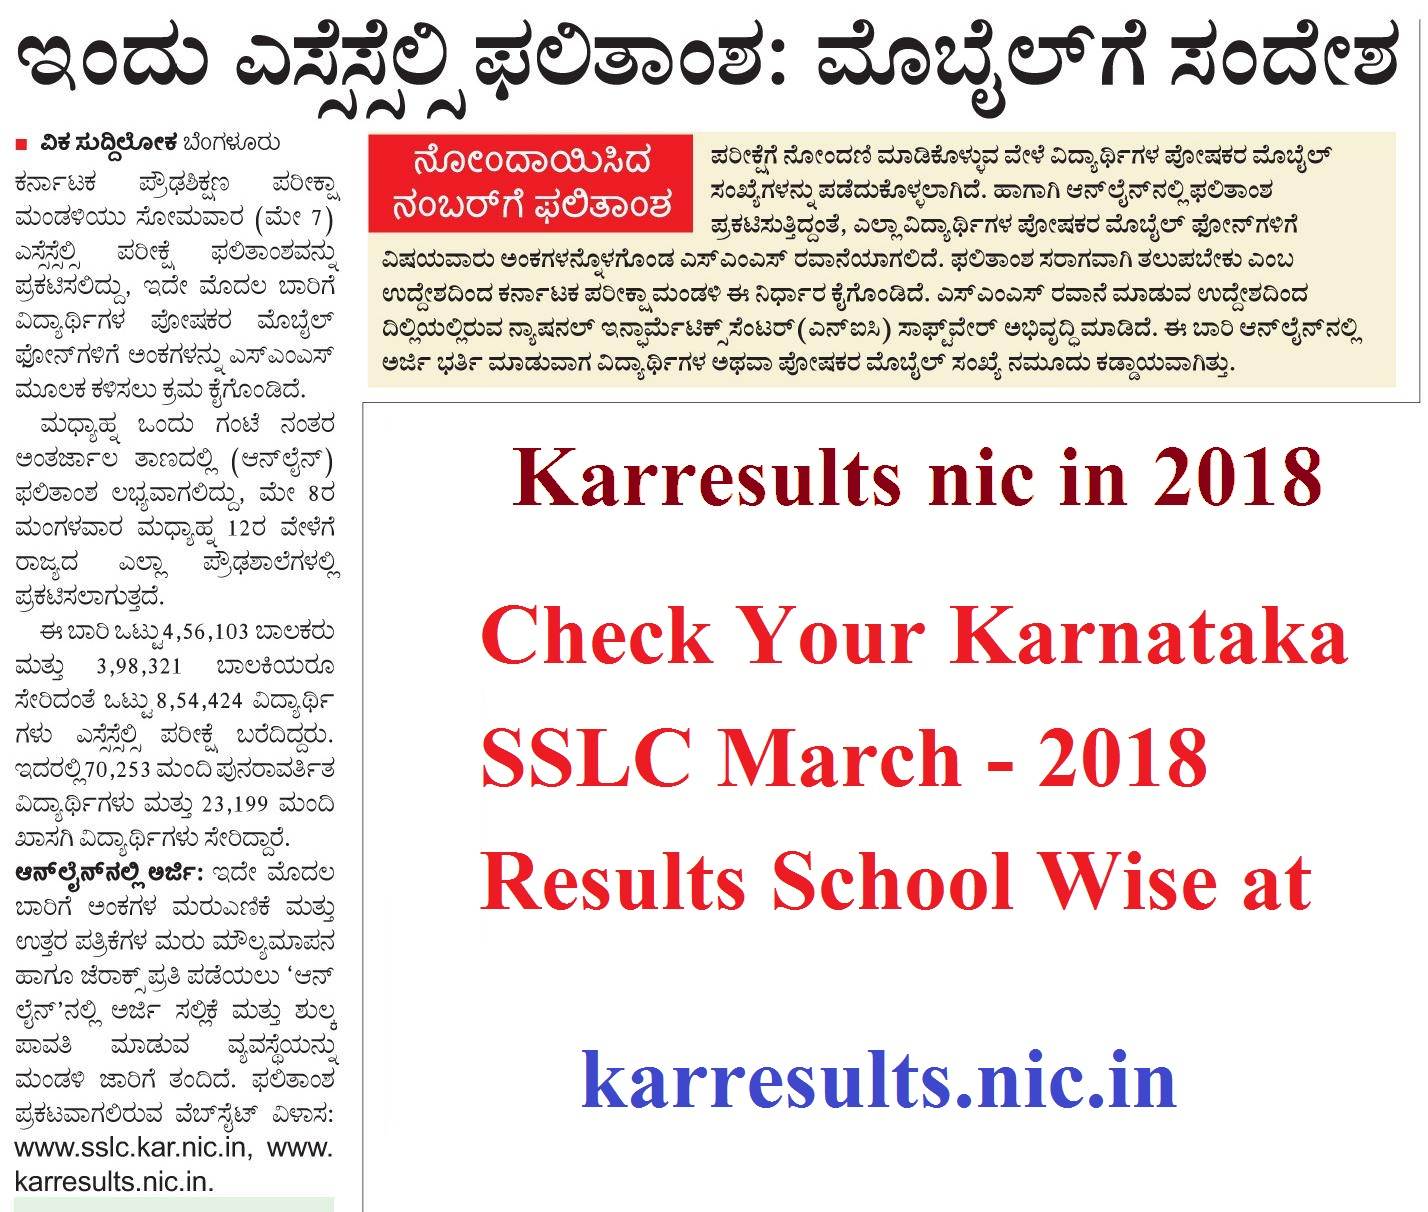 Karresults nic in 2018